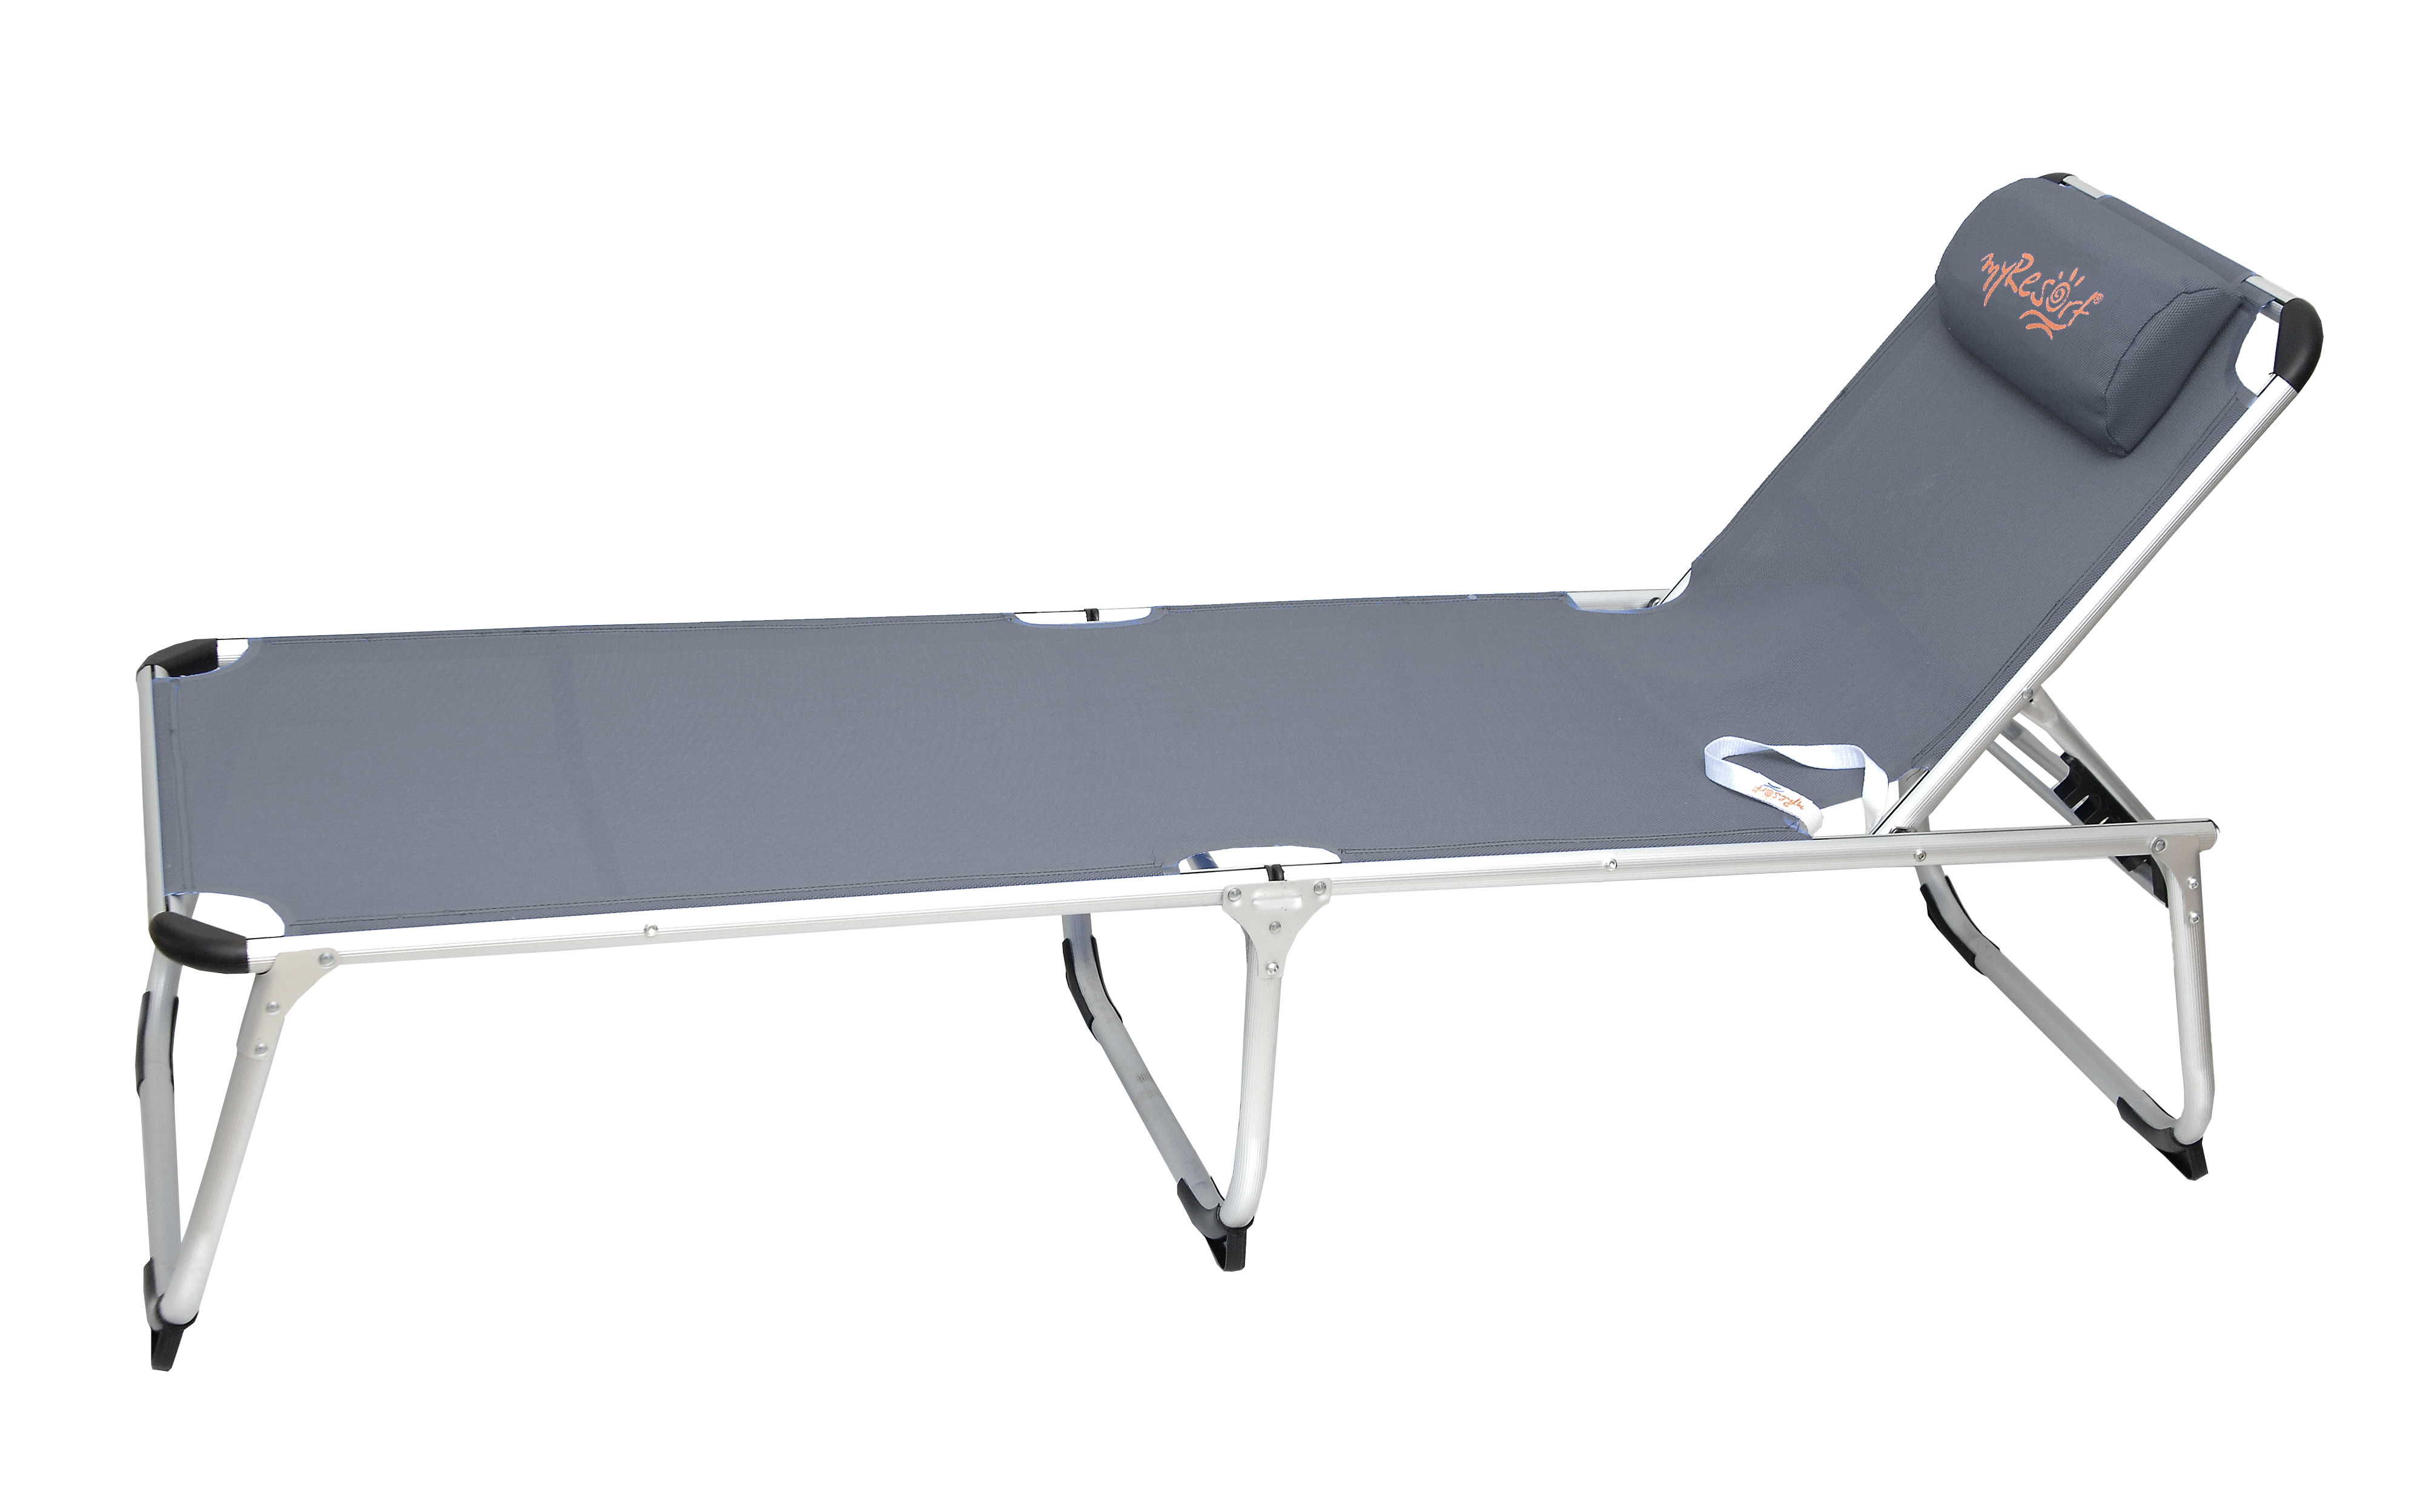 RIPPLED ALUM SUNBED KING SIZE GRAY WITH RECLINING BACK,ΤΕΧΤ